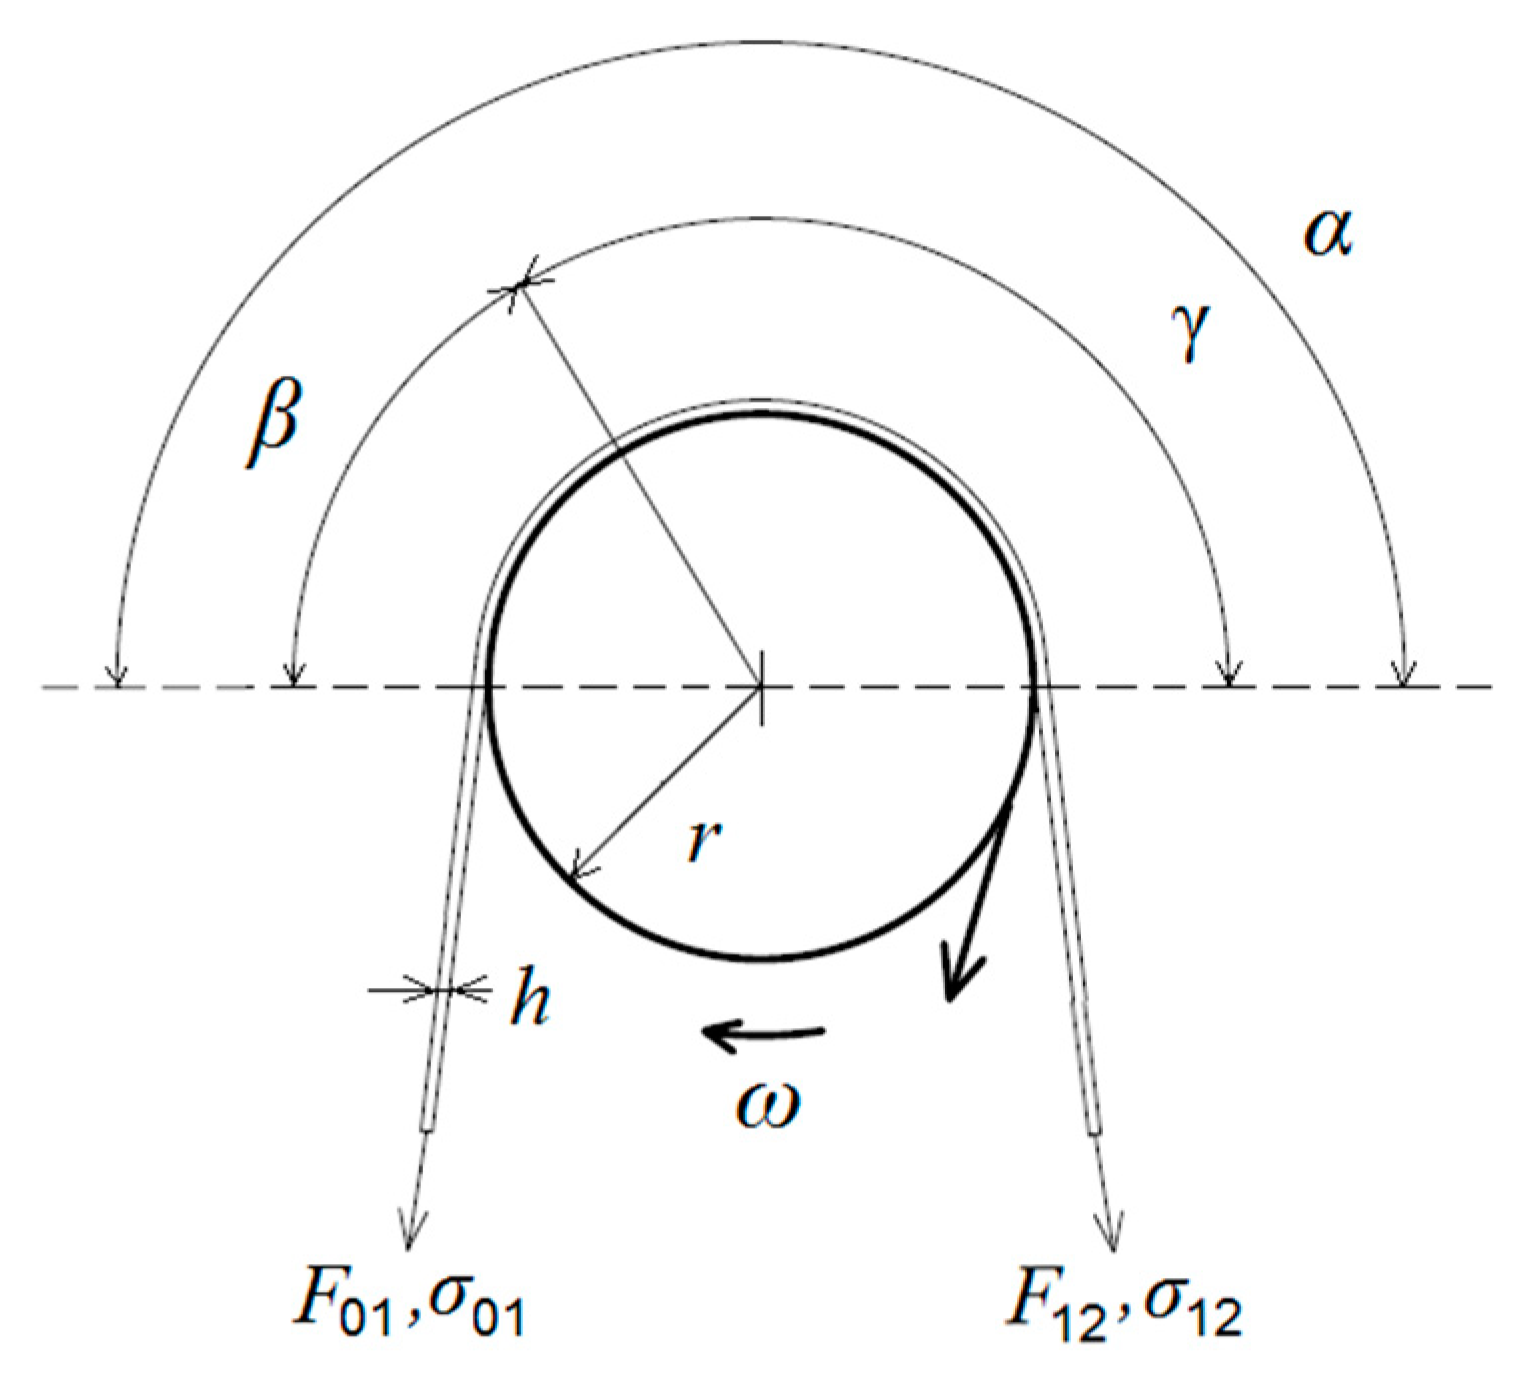 Energies | Free Full-Text | Distribution of the Strip Tensions with